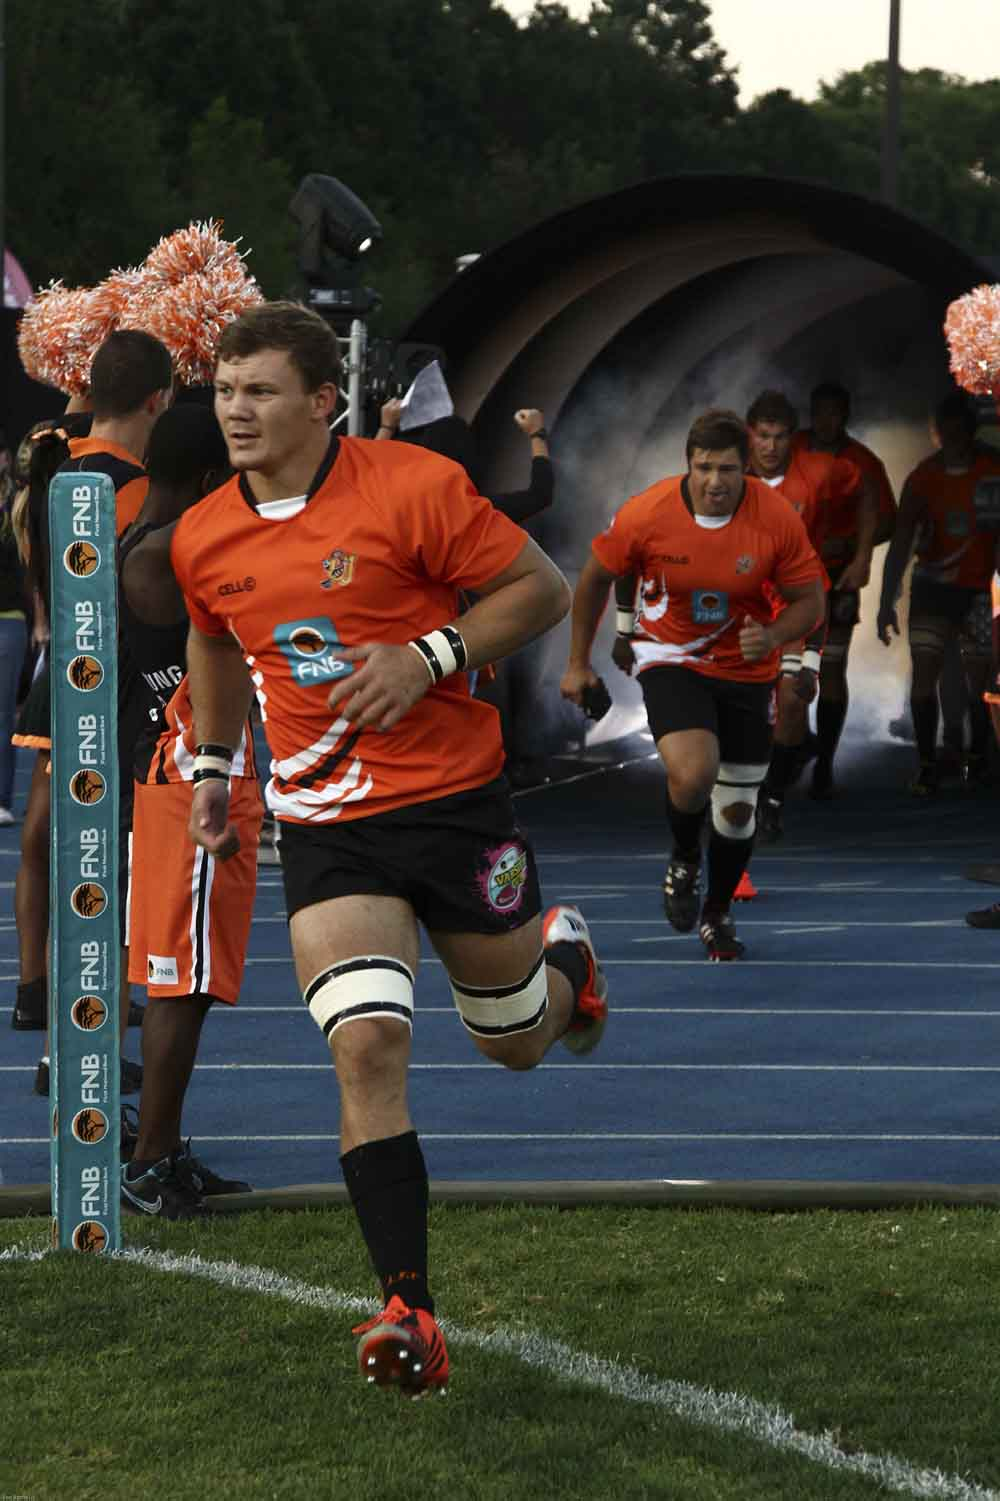 Captain Kobus Porter (left) will lead the University of Johannesburg rugby team onto the field for a second year running in the 2016 FNB Varsity Cup tournament. Photo: Supplied